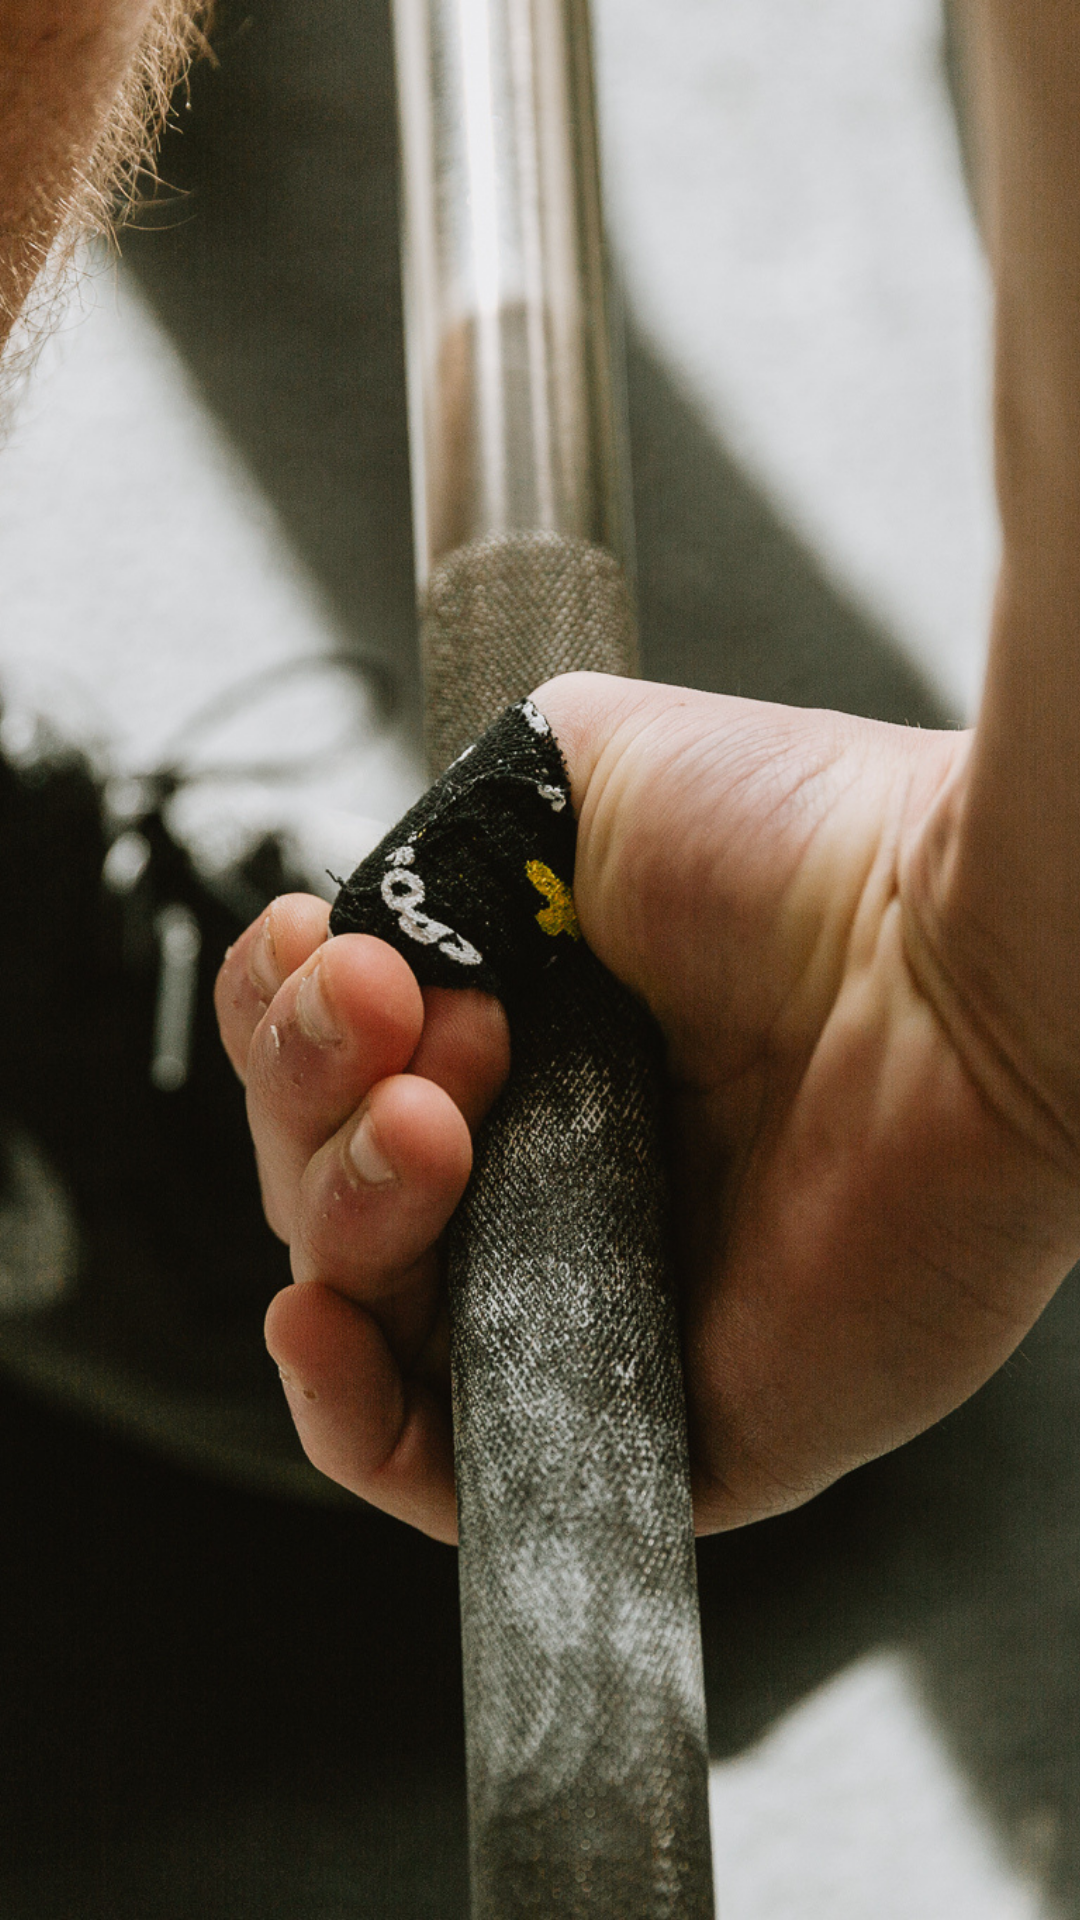 A man lifting weights using the hook grip thumb tape application